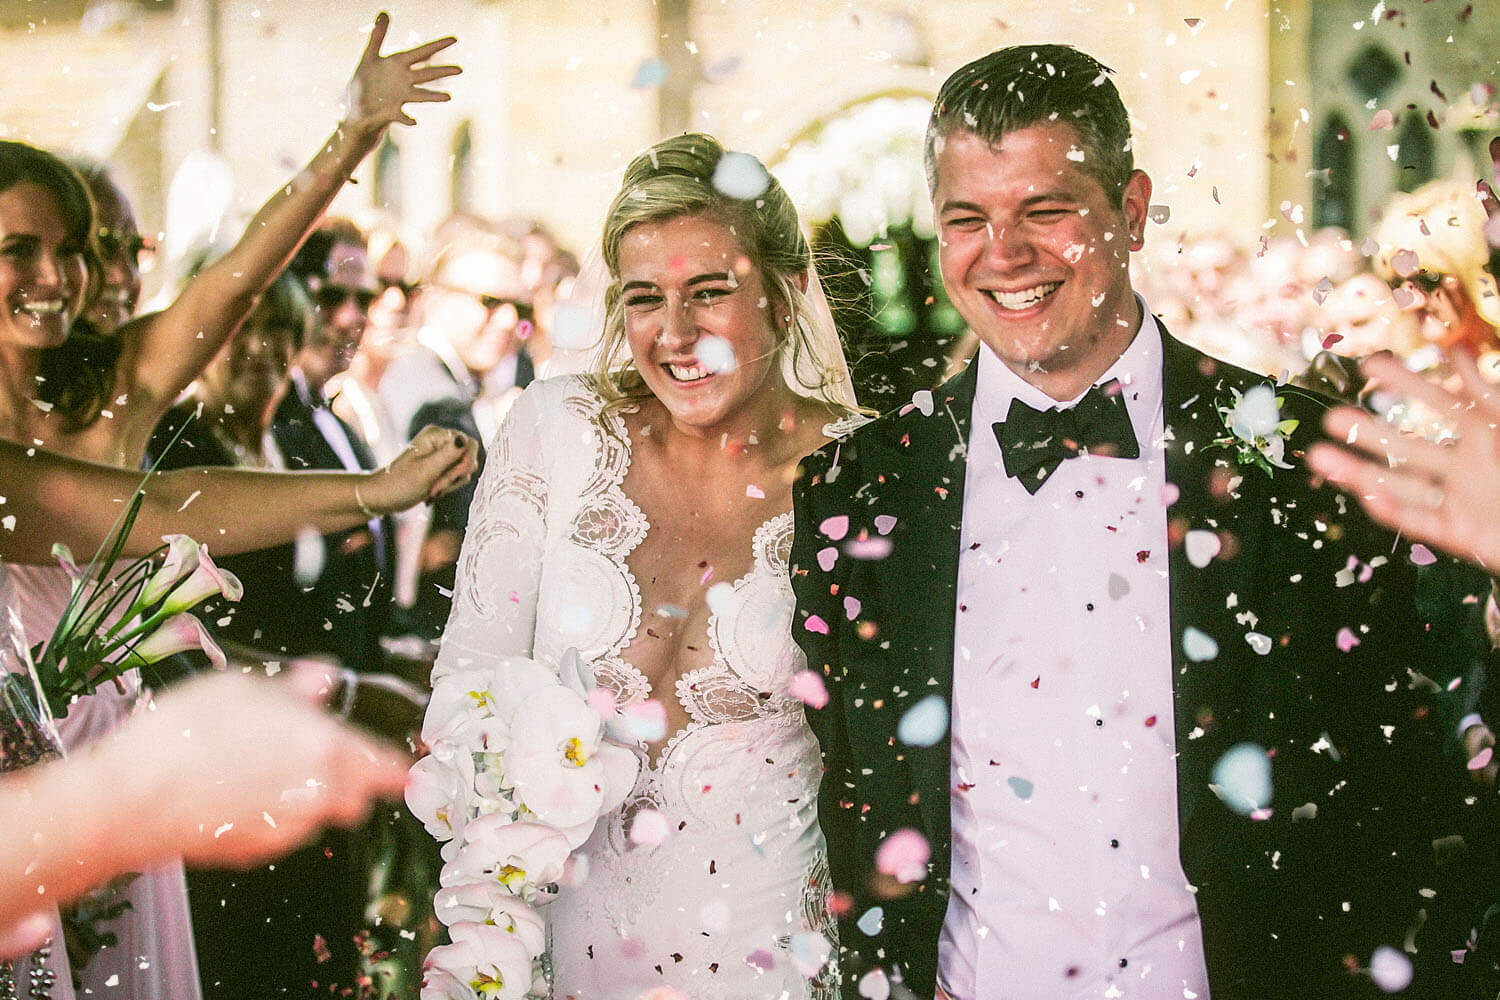 Do I need a 2nd wedding photographer. Bride and groom under confetti